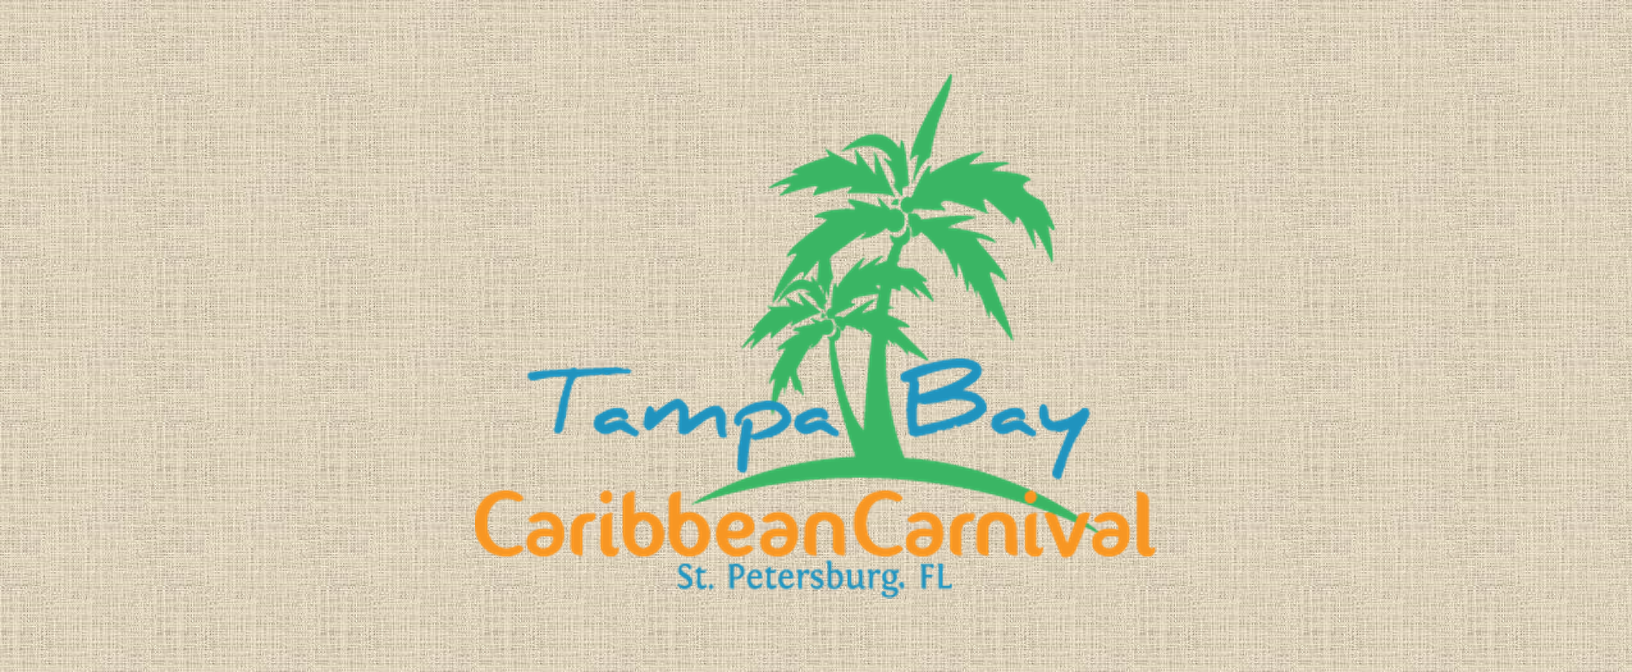 South Florida Promotions Agency Partners With Brandmark Advertising To Promote Tampa Bay Caribbean Carnival